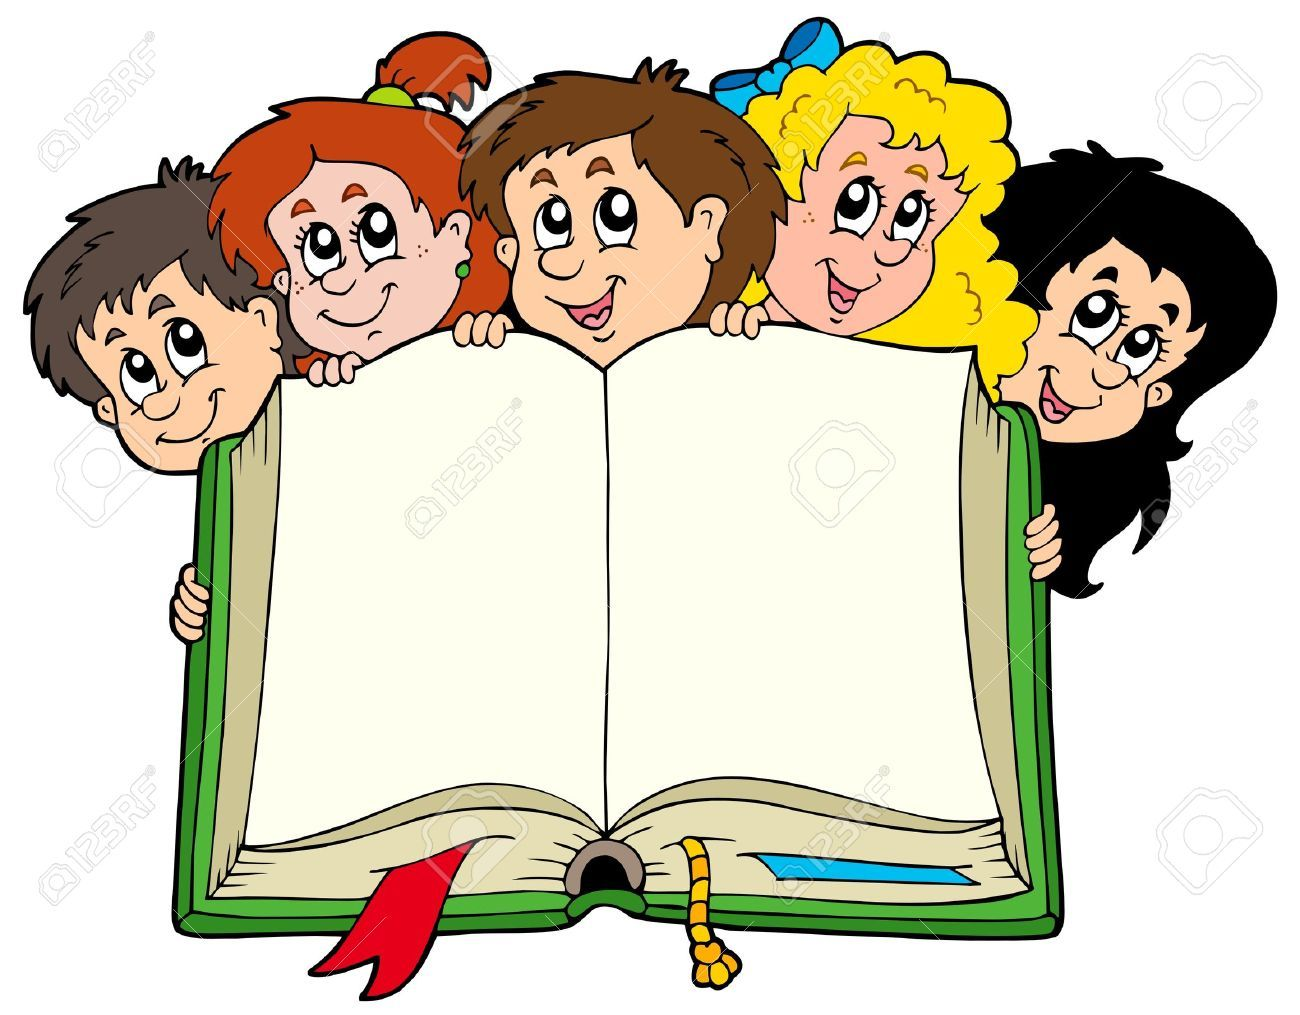 Child holding a book clipart 1 » Clipart Portal.